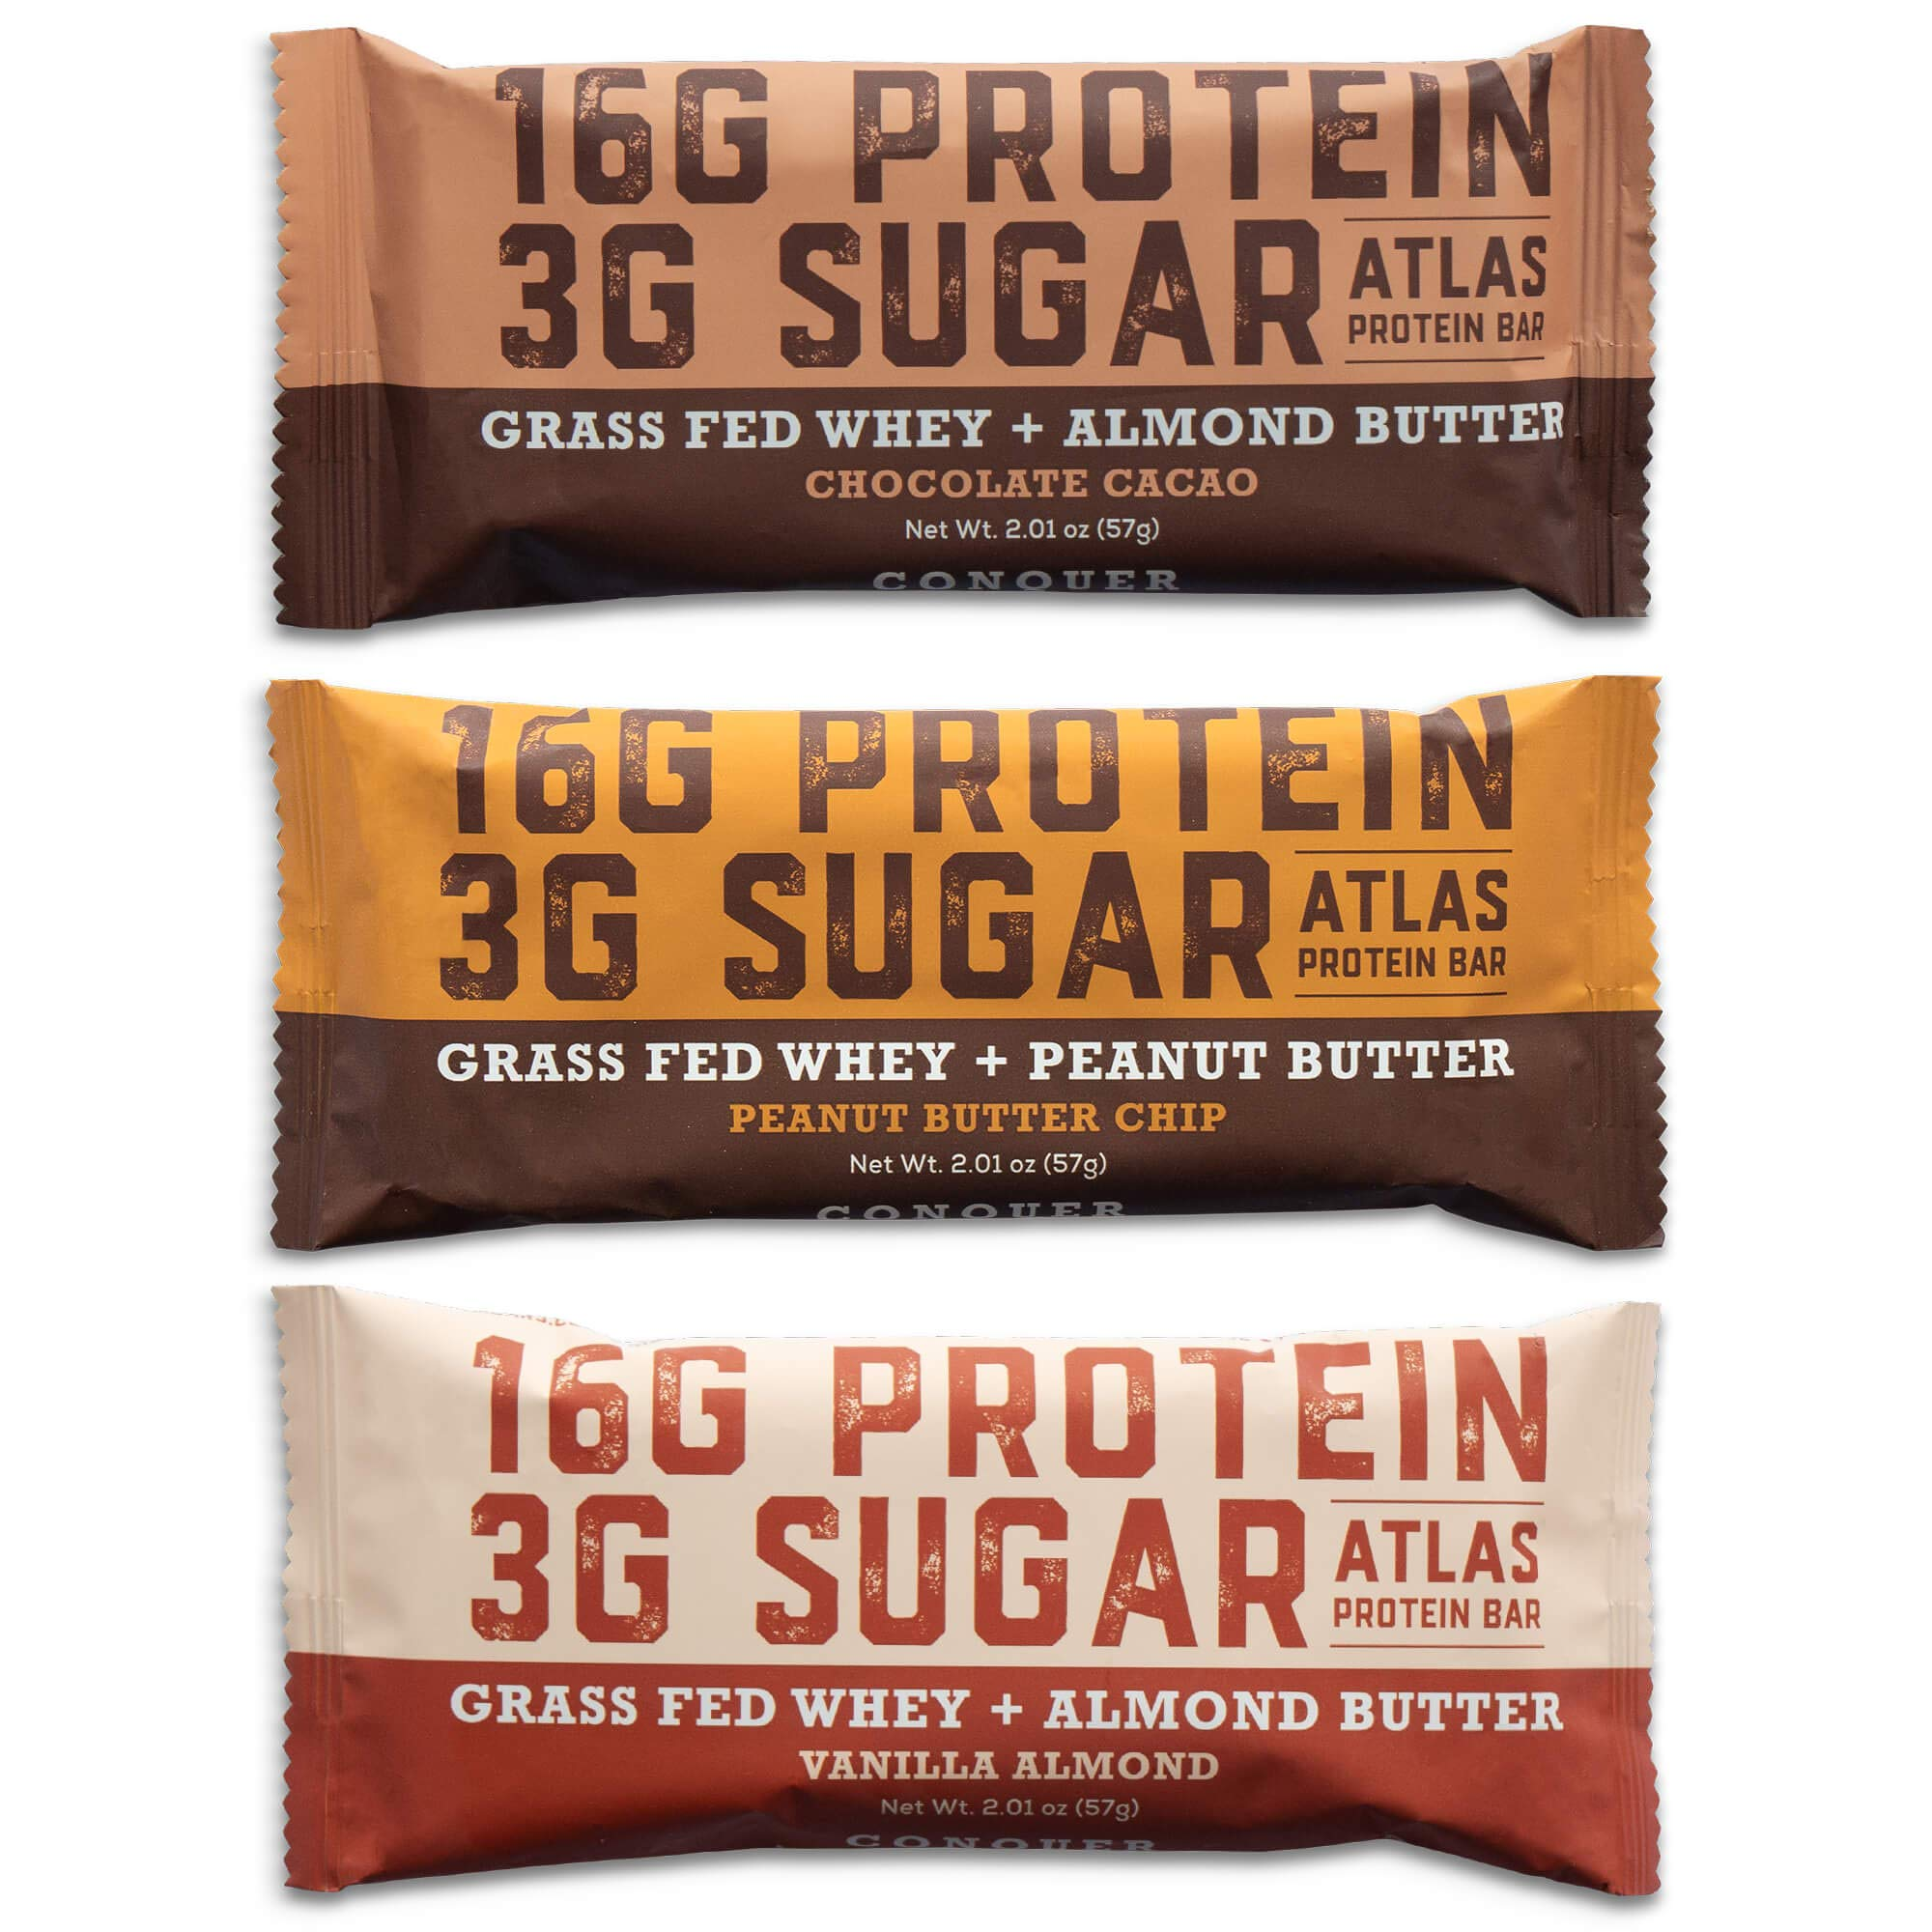 Atlas Protein Bar - Keto Friendly, Variety Pack (9-Pack) - Grass Fed Whey, Low Sugar, Clean Ingredients, All Natural, Gluten Free, Soy Free, and GMO Free by Atlas Protein Bar